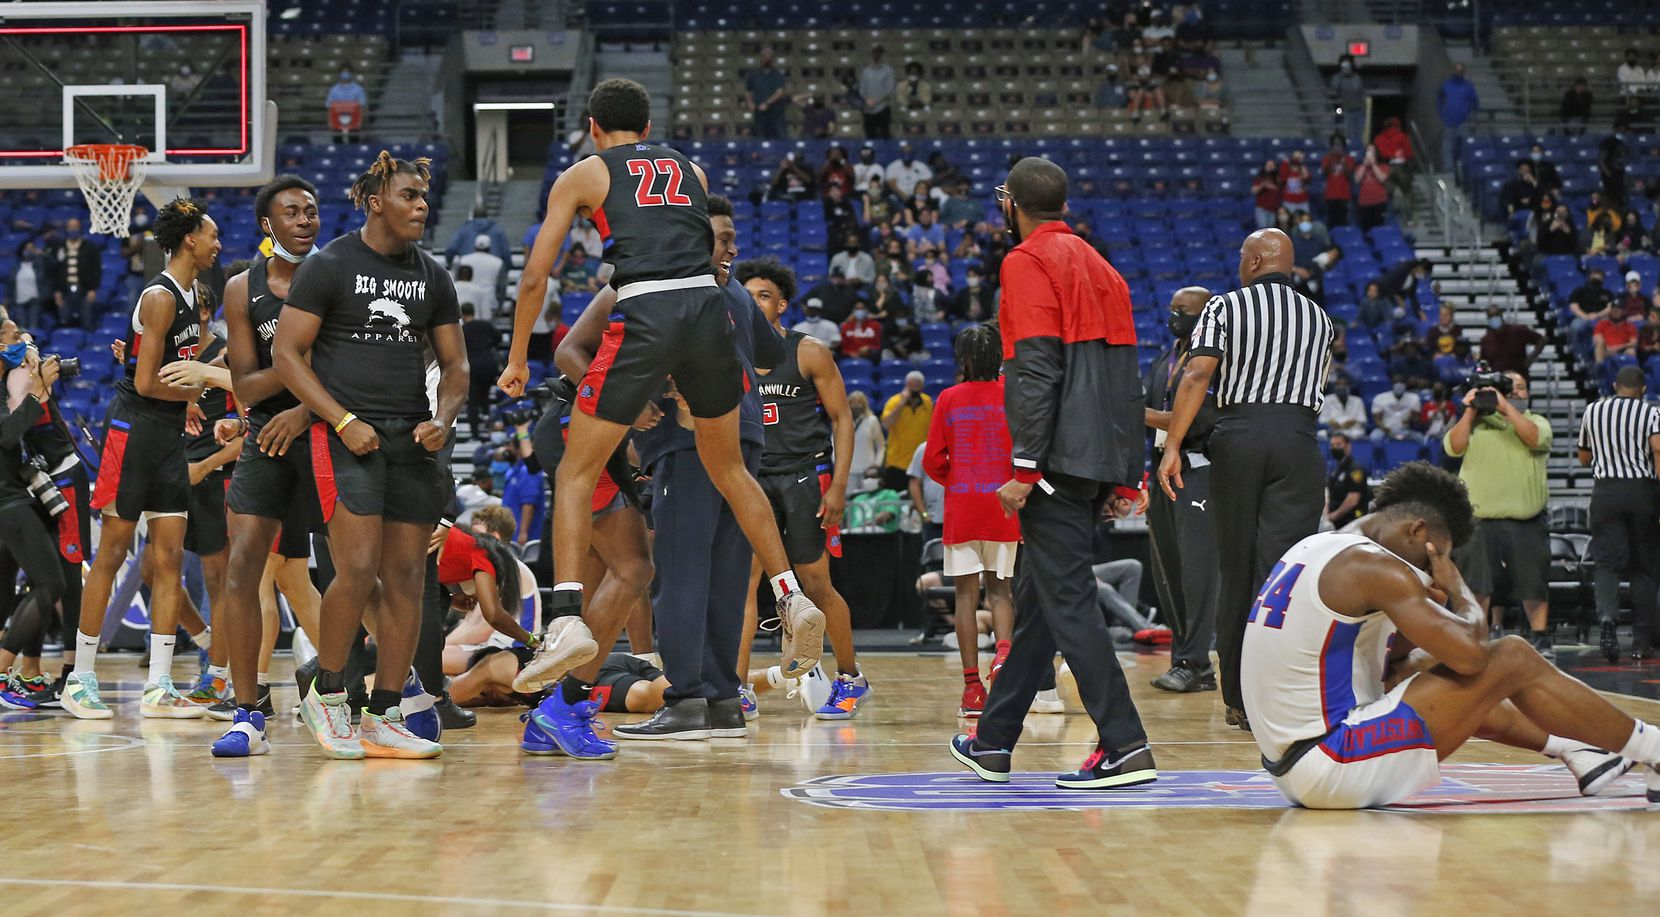 Westlake Kj Adams #24 sits on the floor as Duncanville celebrates their victory. UIL boys Class 6A basketball state championship game between Duncanville and Austin Westlake on Saturday, March 13, 2021 at the Alamodome.